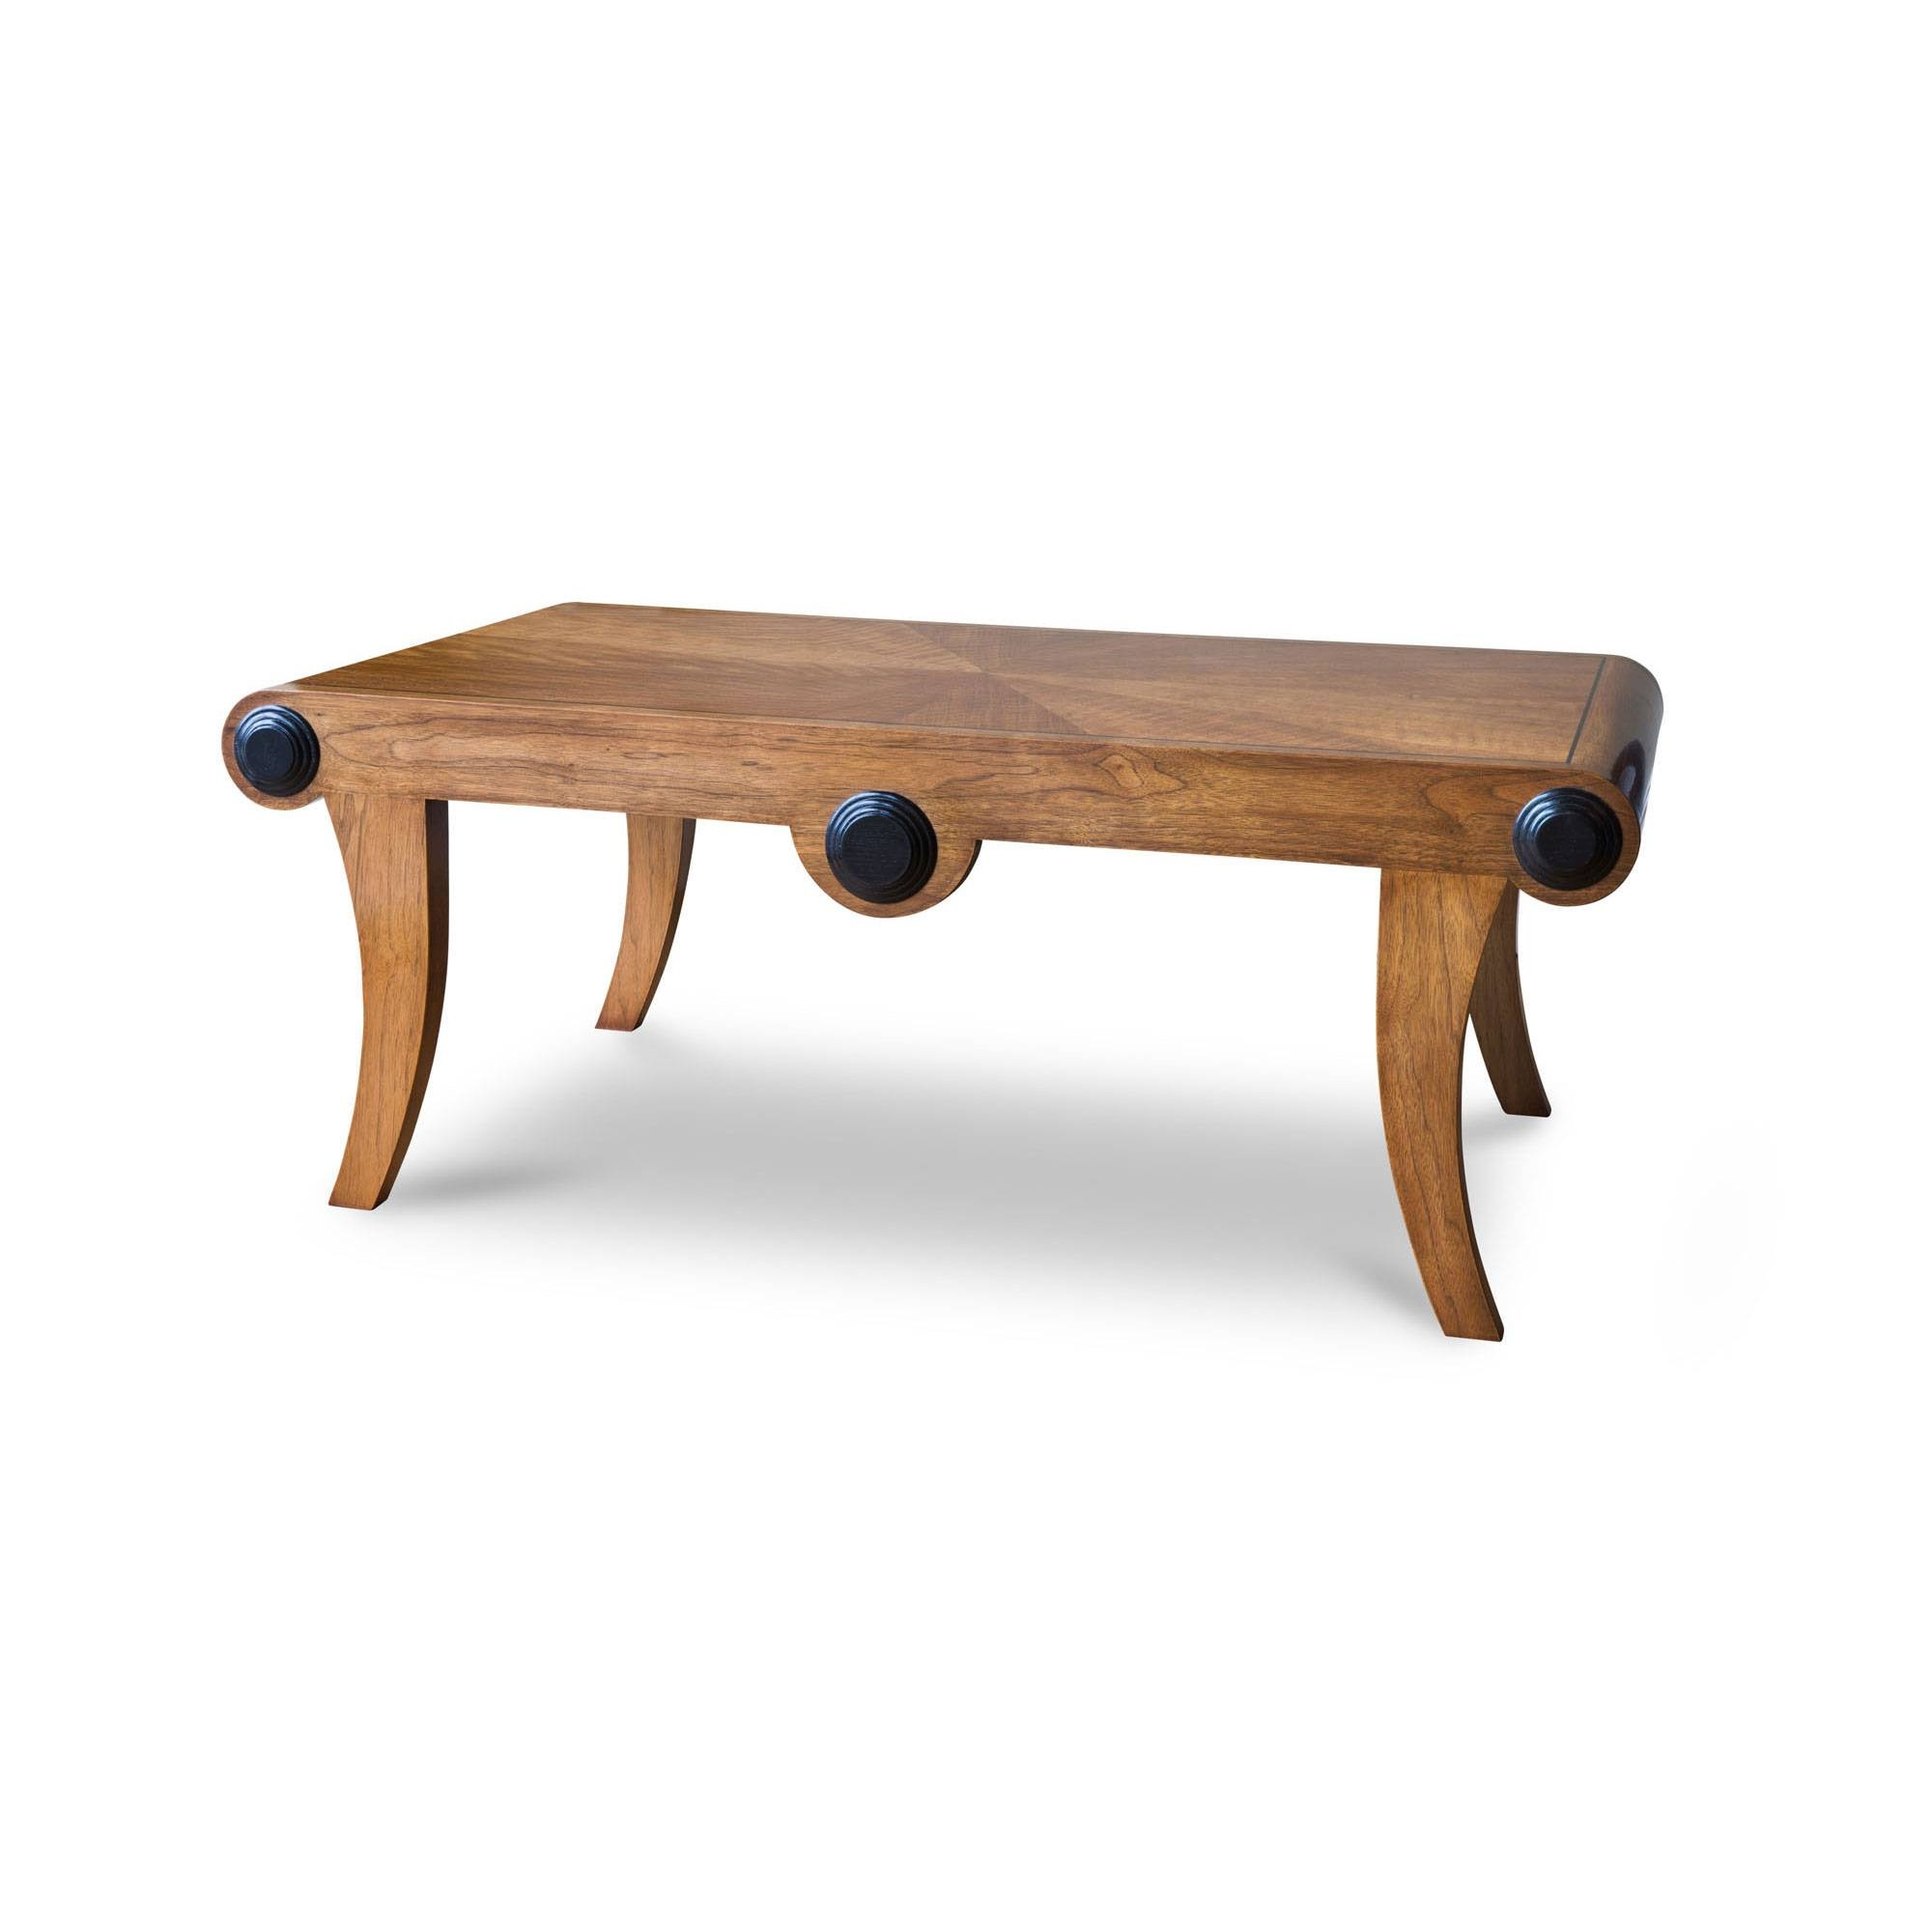 Luxury Coffee Tables | Bespoke Footstools | Beaumont & Fletcher with regard to Bespoke Coffee Tables (Image 26 of 30)